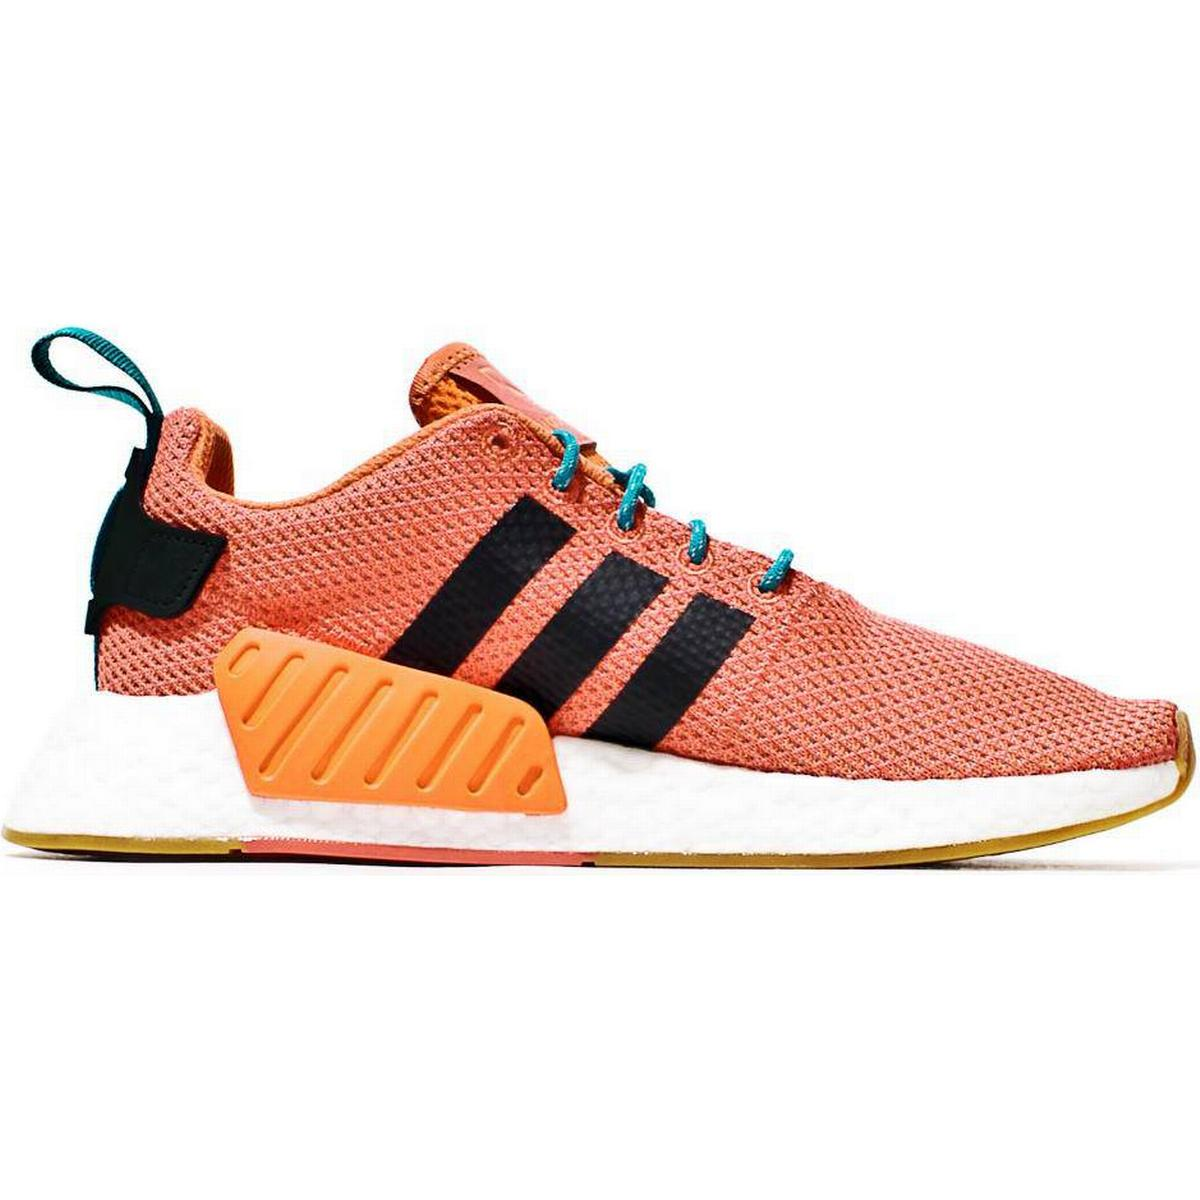 Adidas NMD Skor (1000+ produkter) hos PriceRunner </p>                     </div> 		  <!--bof Product URL --> 										<!--eof Product URL --> 					<!--bof Quantity Discounts table --> 											<!--eof Quantity Discounts table --> 				</div> 				                       			</dd> 						<dt class=